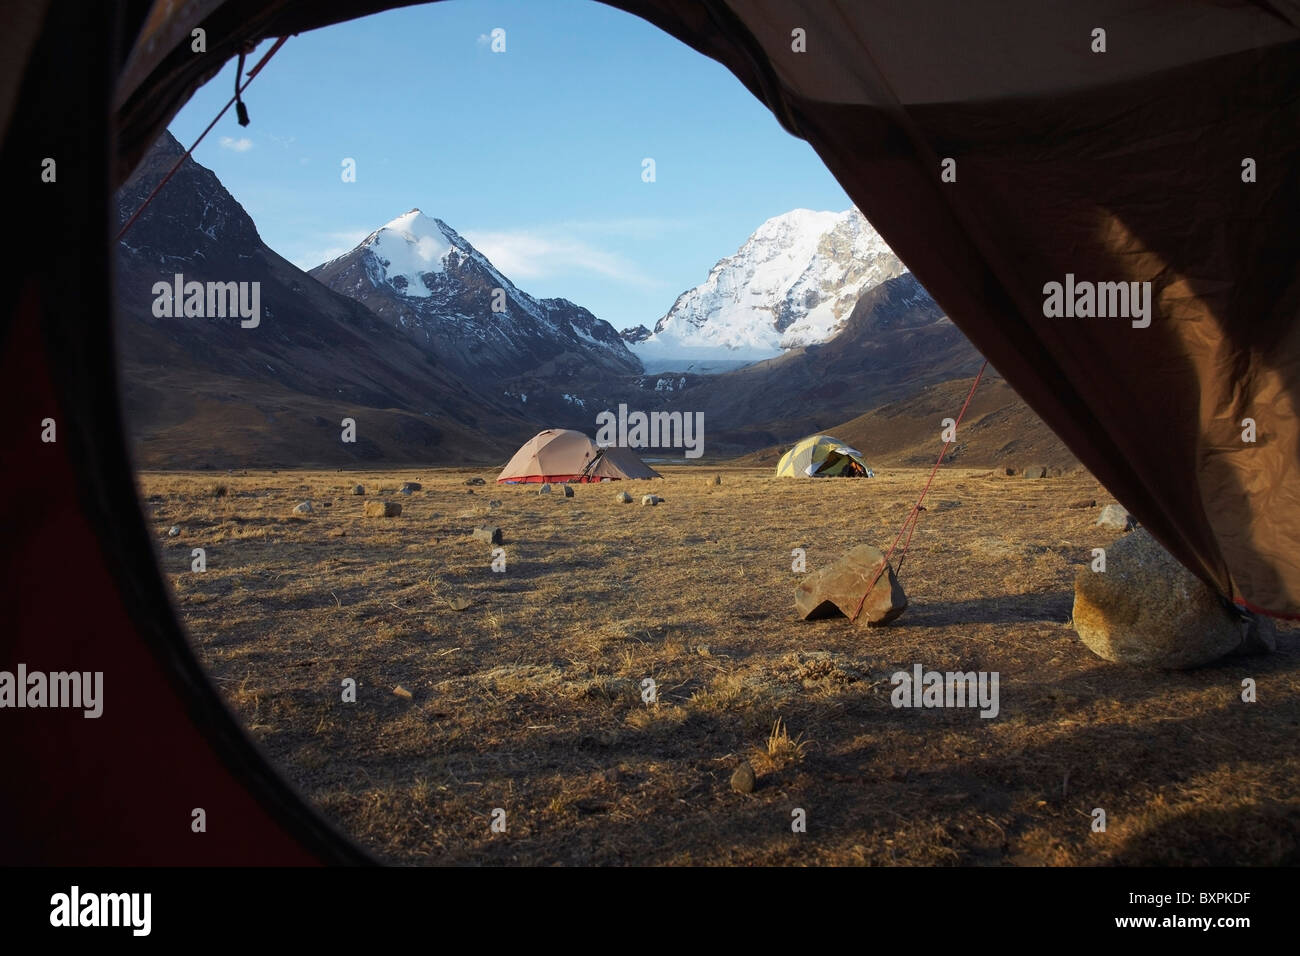 Huayna Potosi Viewed From Tent - Stock Image